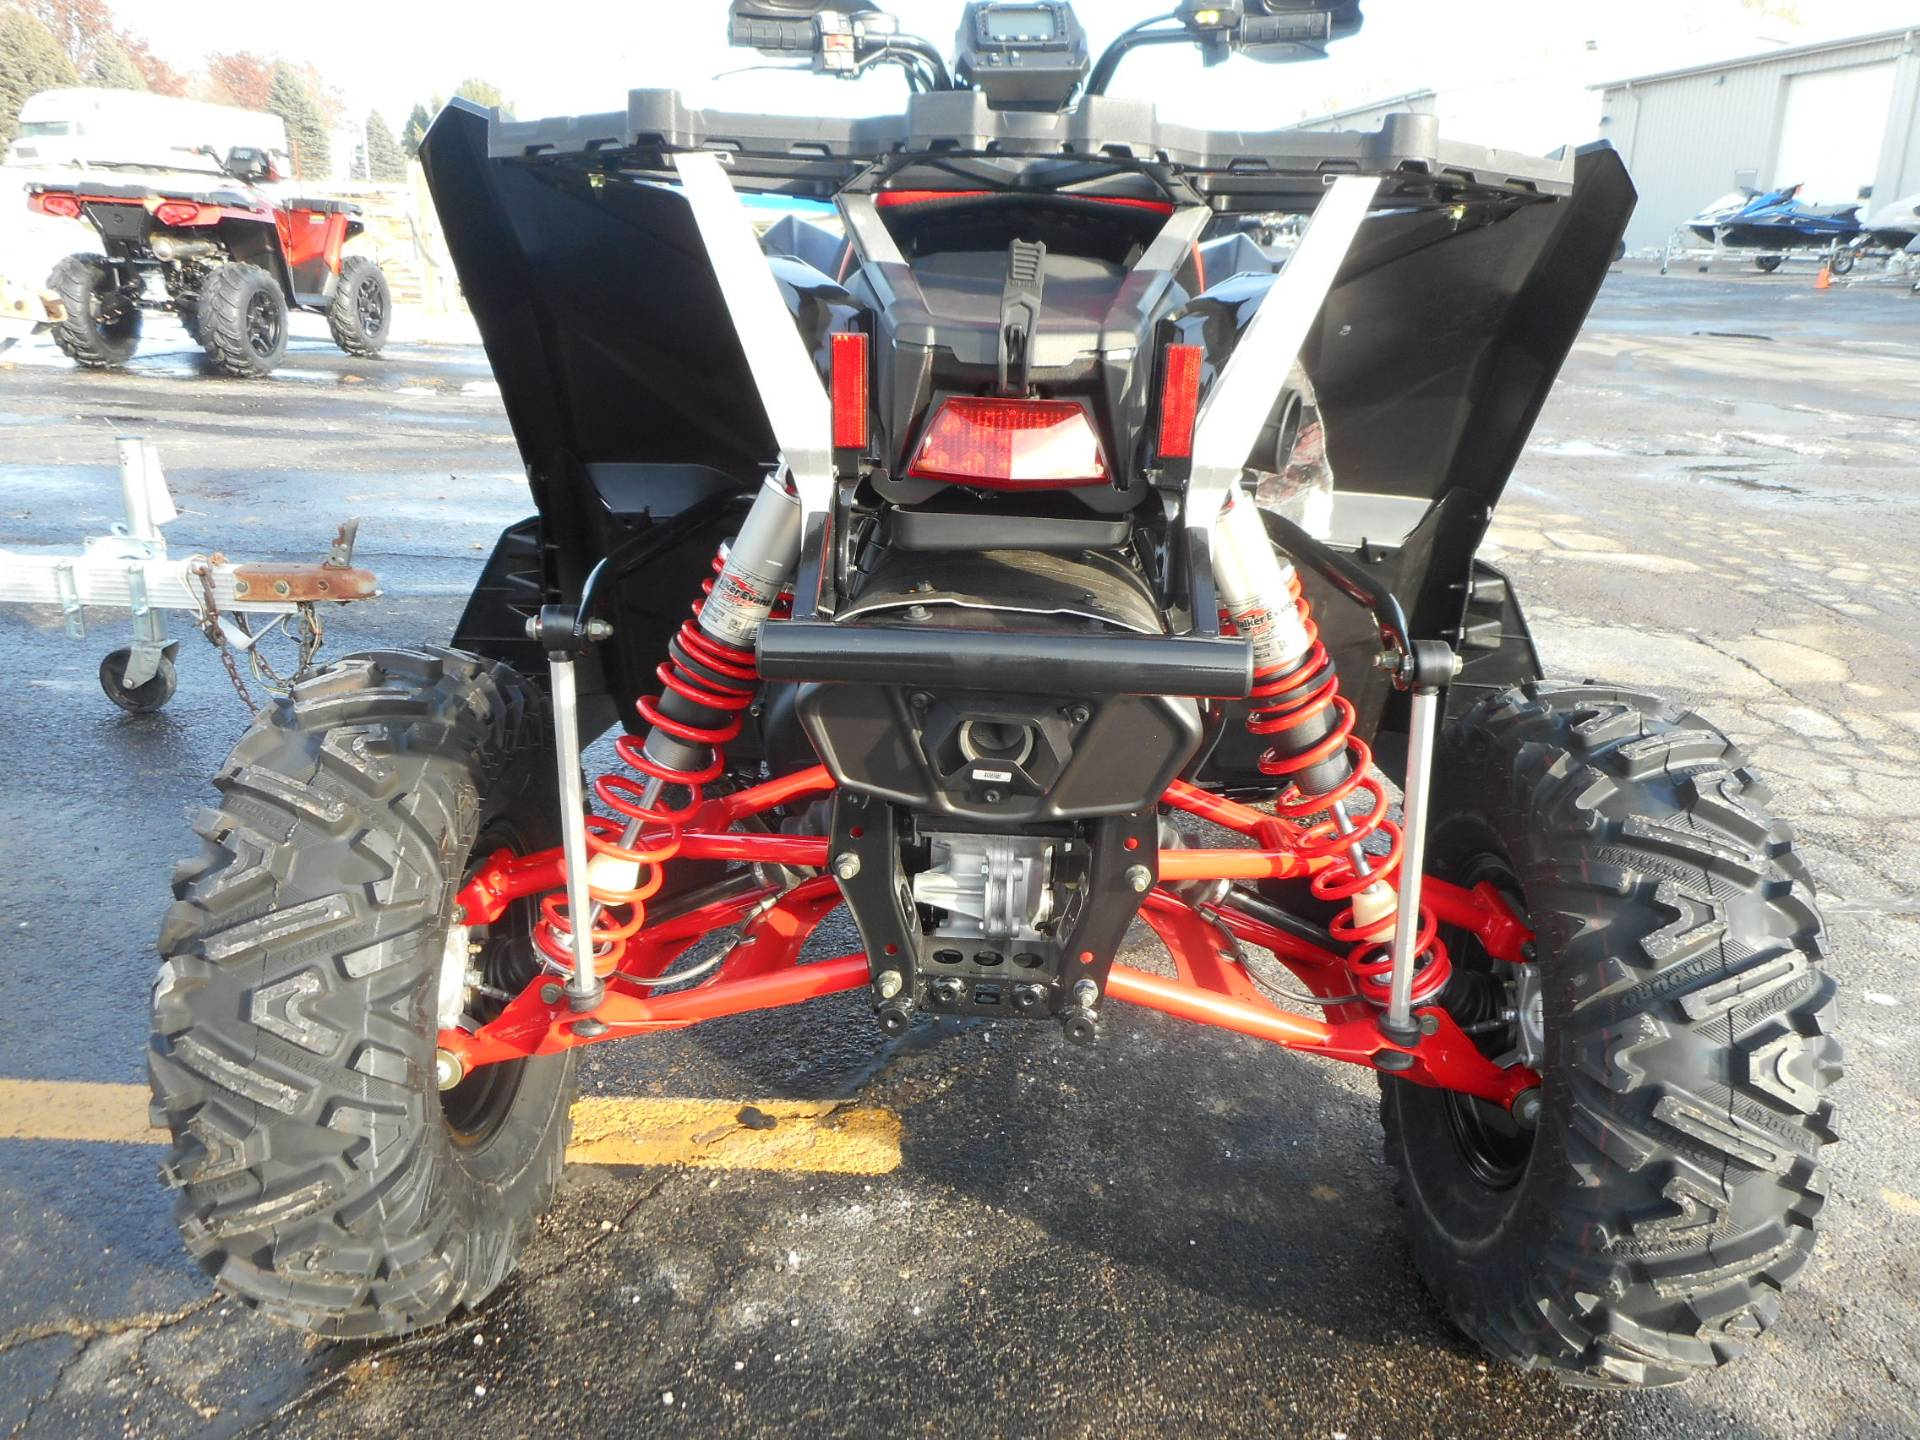 2020 Polaris Scrambler XP 1000 S in Belvidere, Illinois - Photo 5